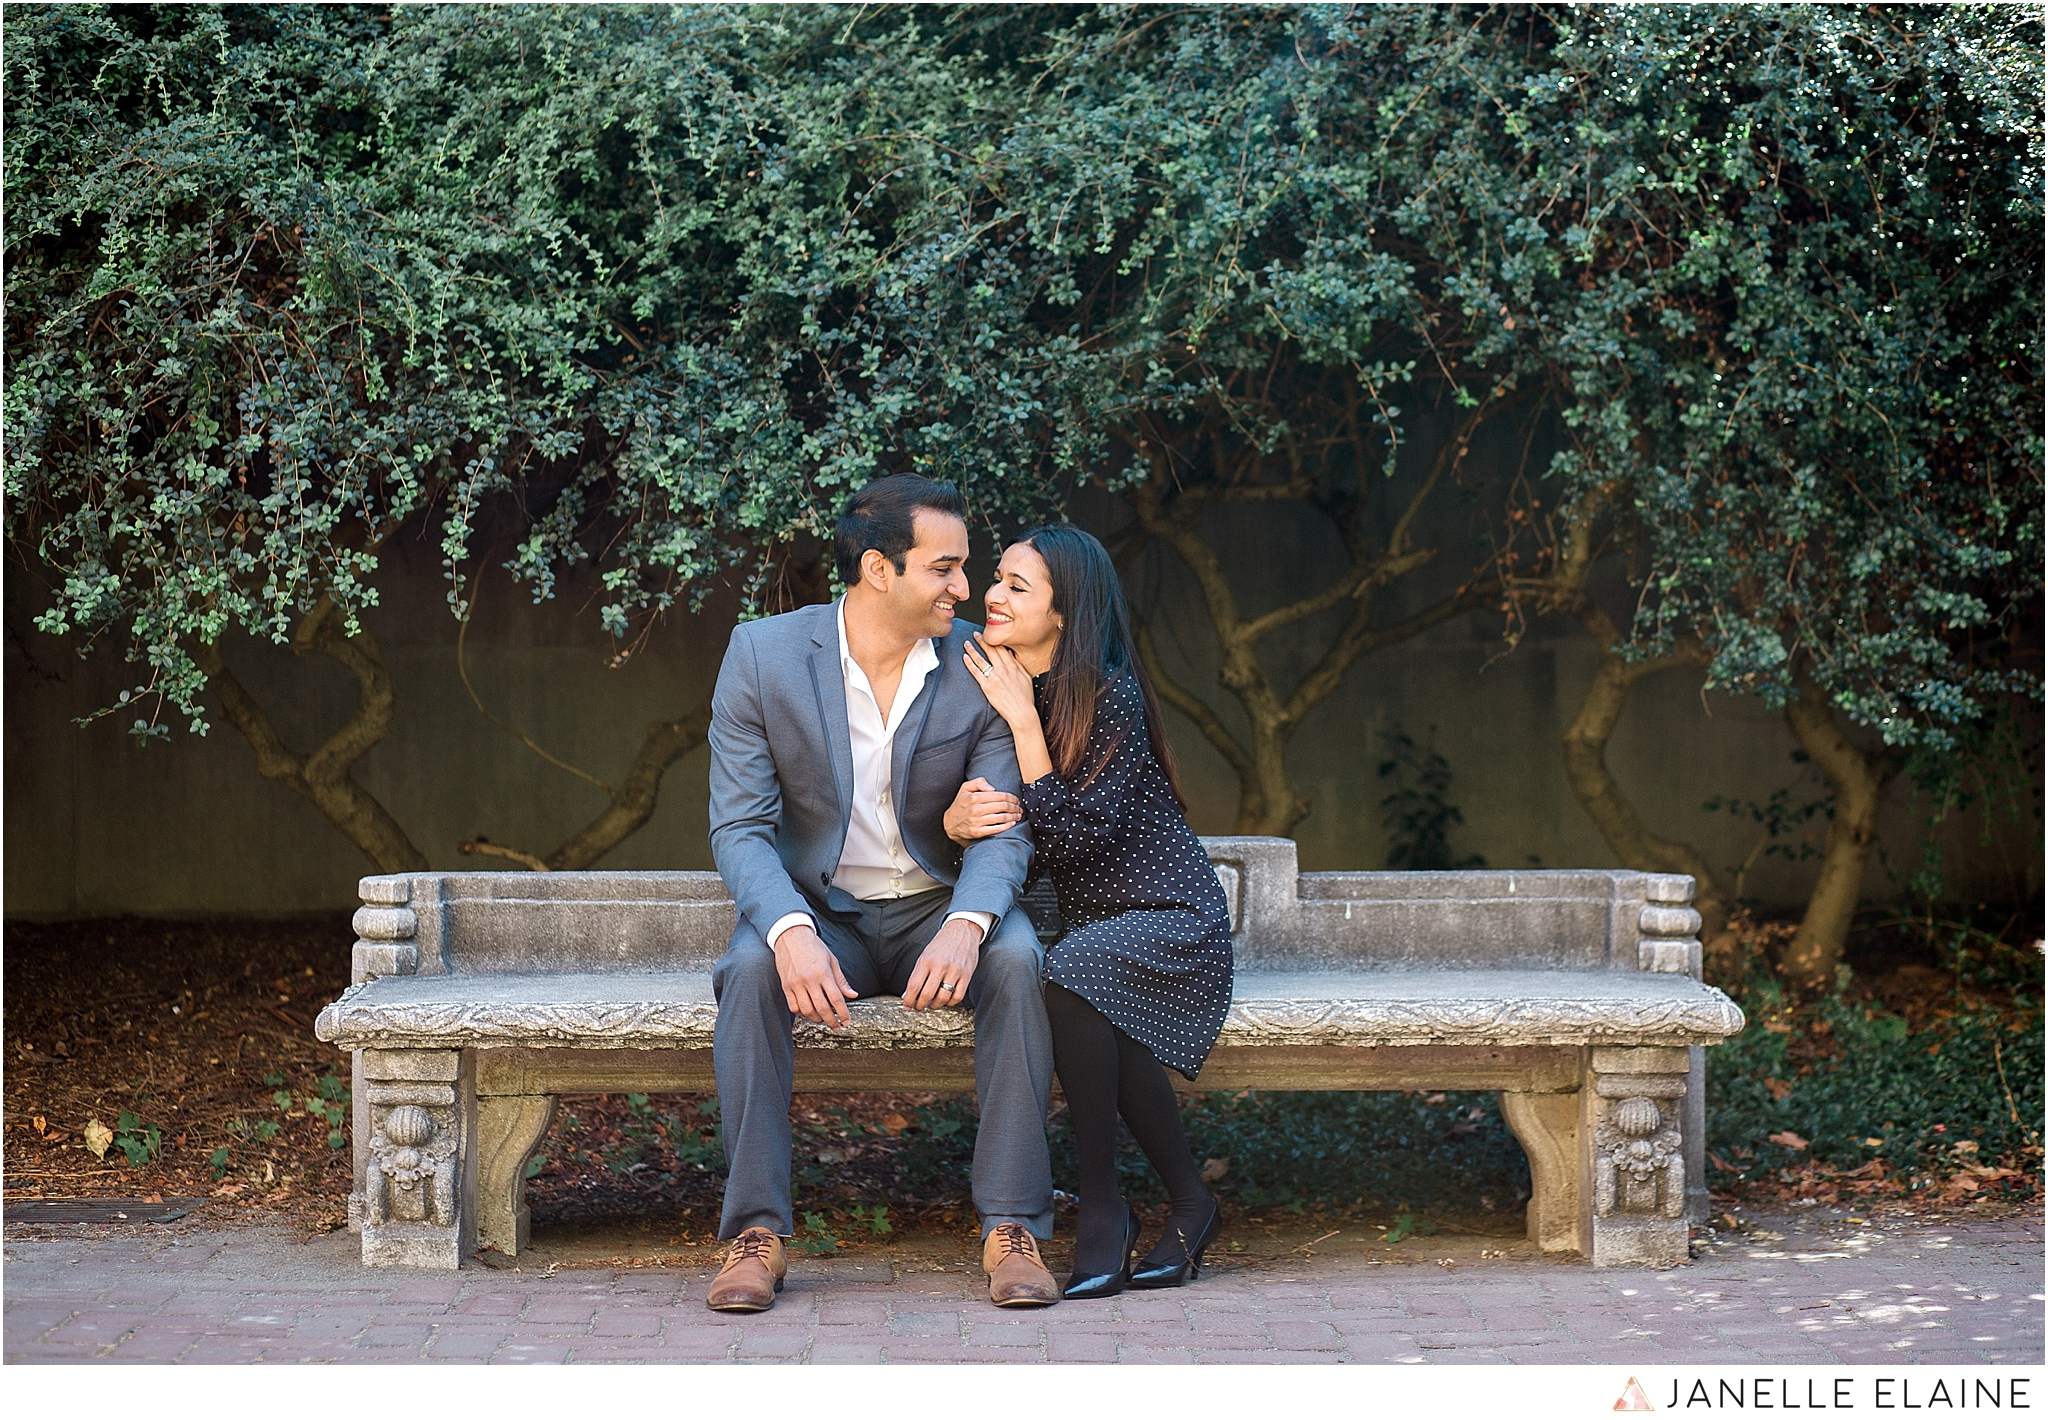 janelle elaine photography-zain and umema-seattle-uw-red square-engagement-photographer-69.jpg